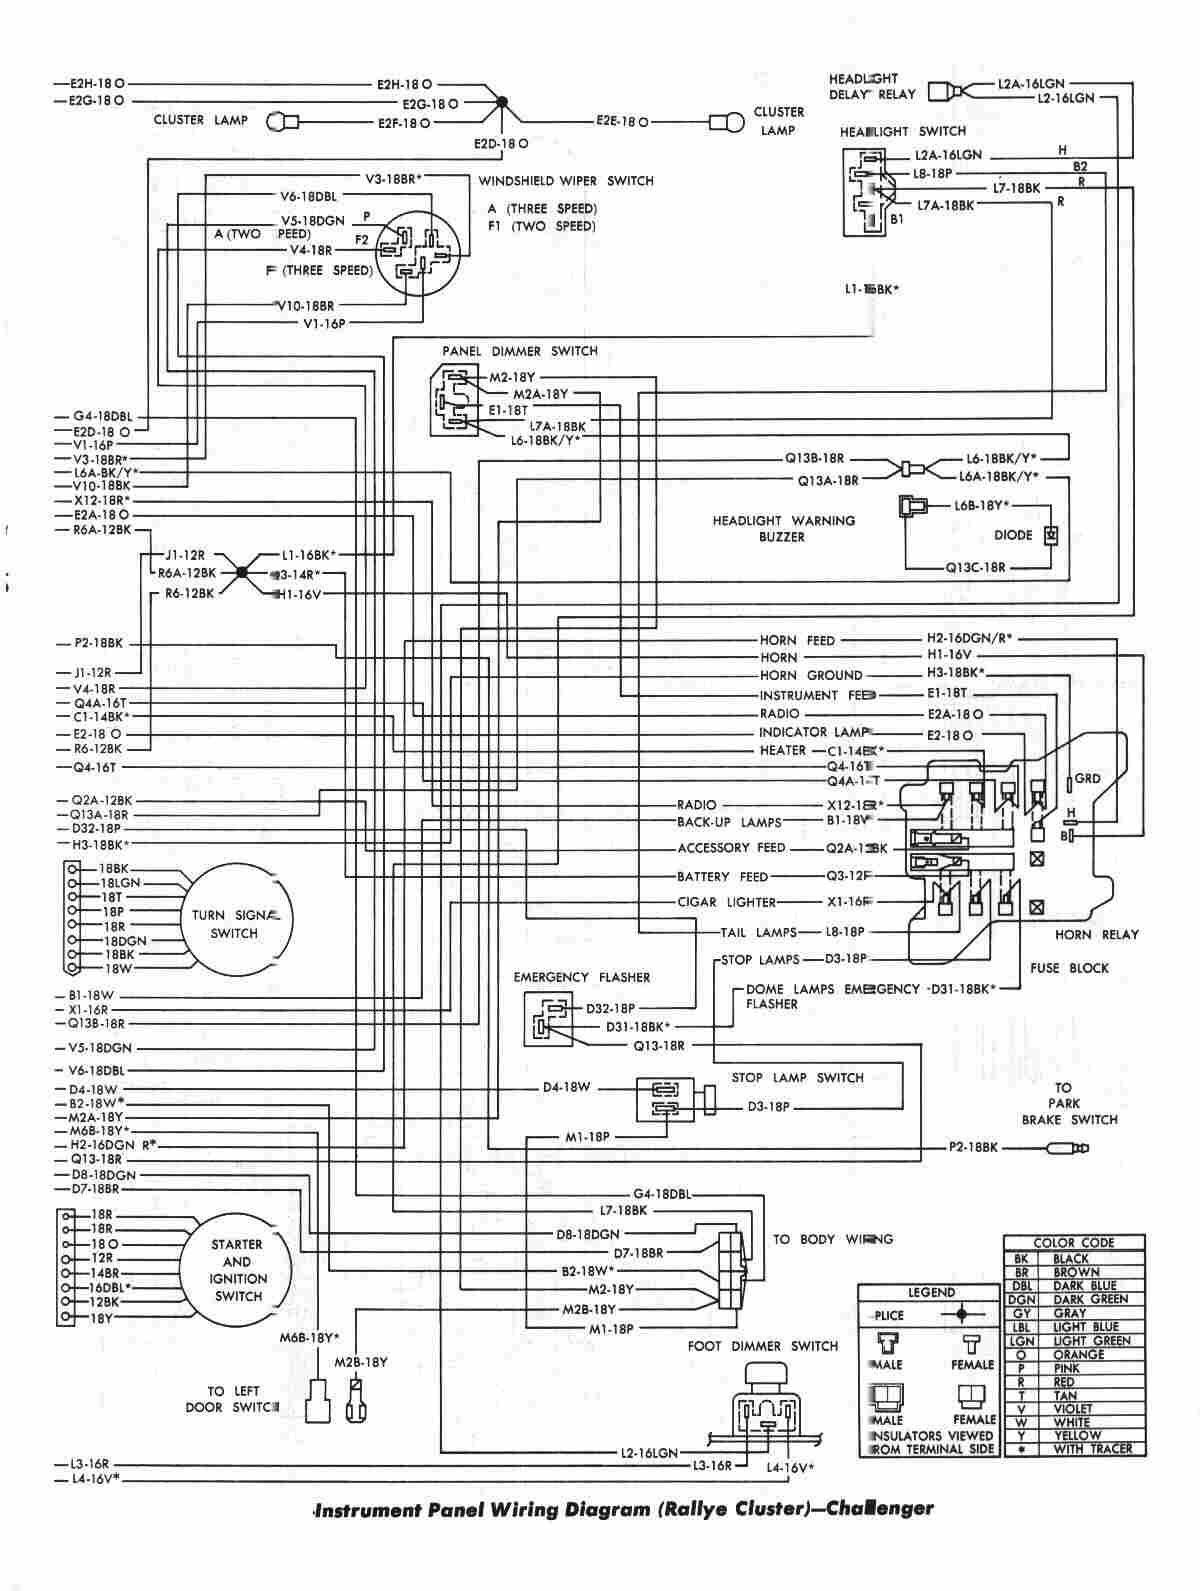 hight resolution of 2011 dodge charger wiring diagram new 1973 dart